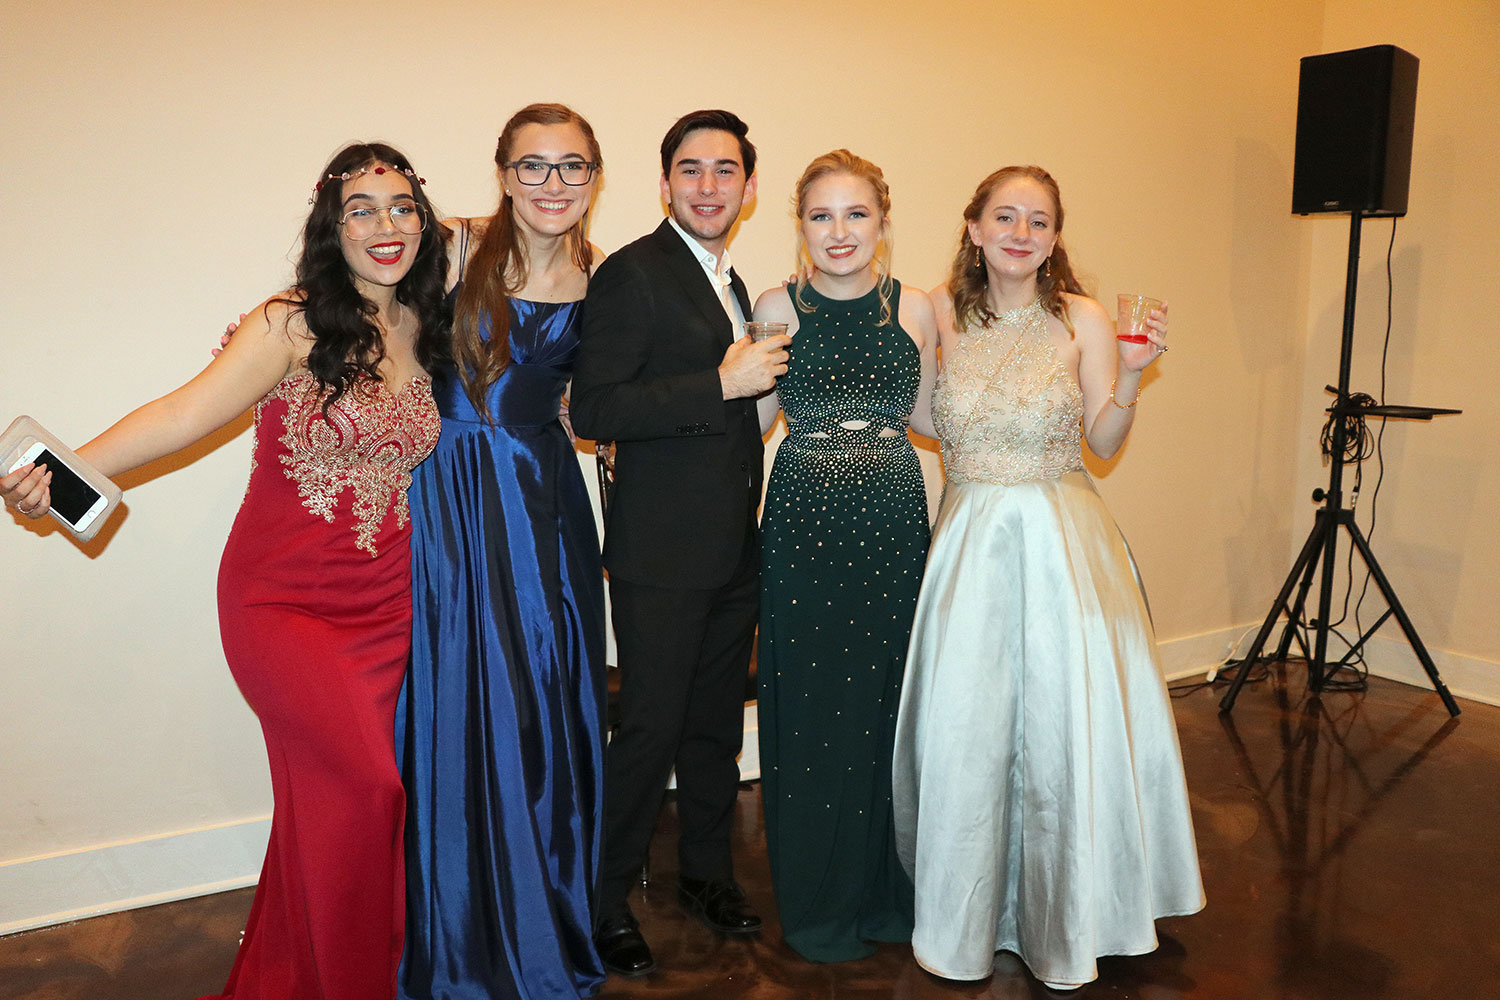 Junior Caroline Aguilar, senior Natalie Taylor, LC alumni Timothy Kihneman and seniors Madison Wester and Anne Kalinowsky smile for the camera at Prom